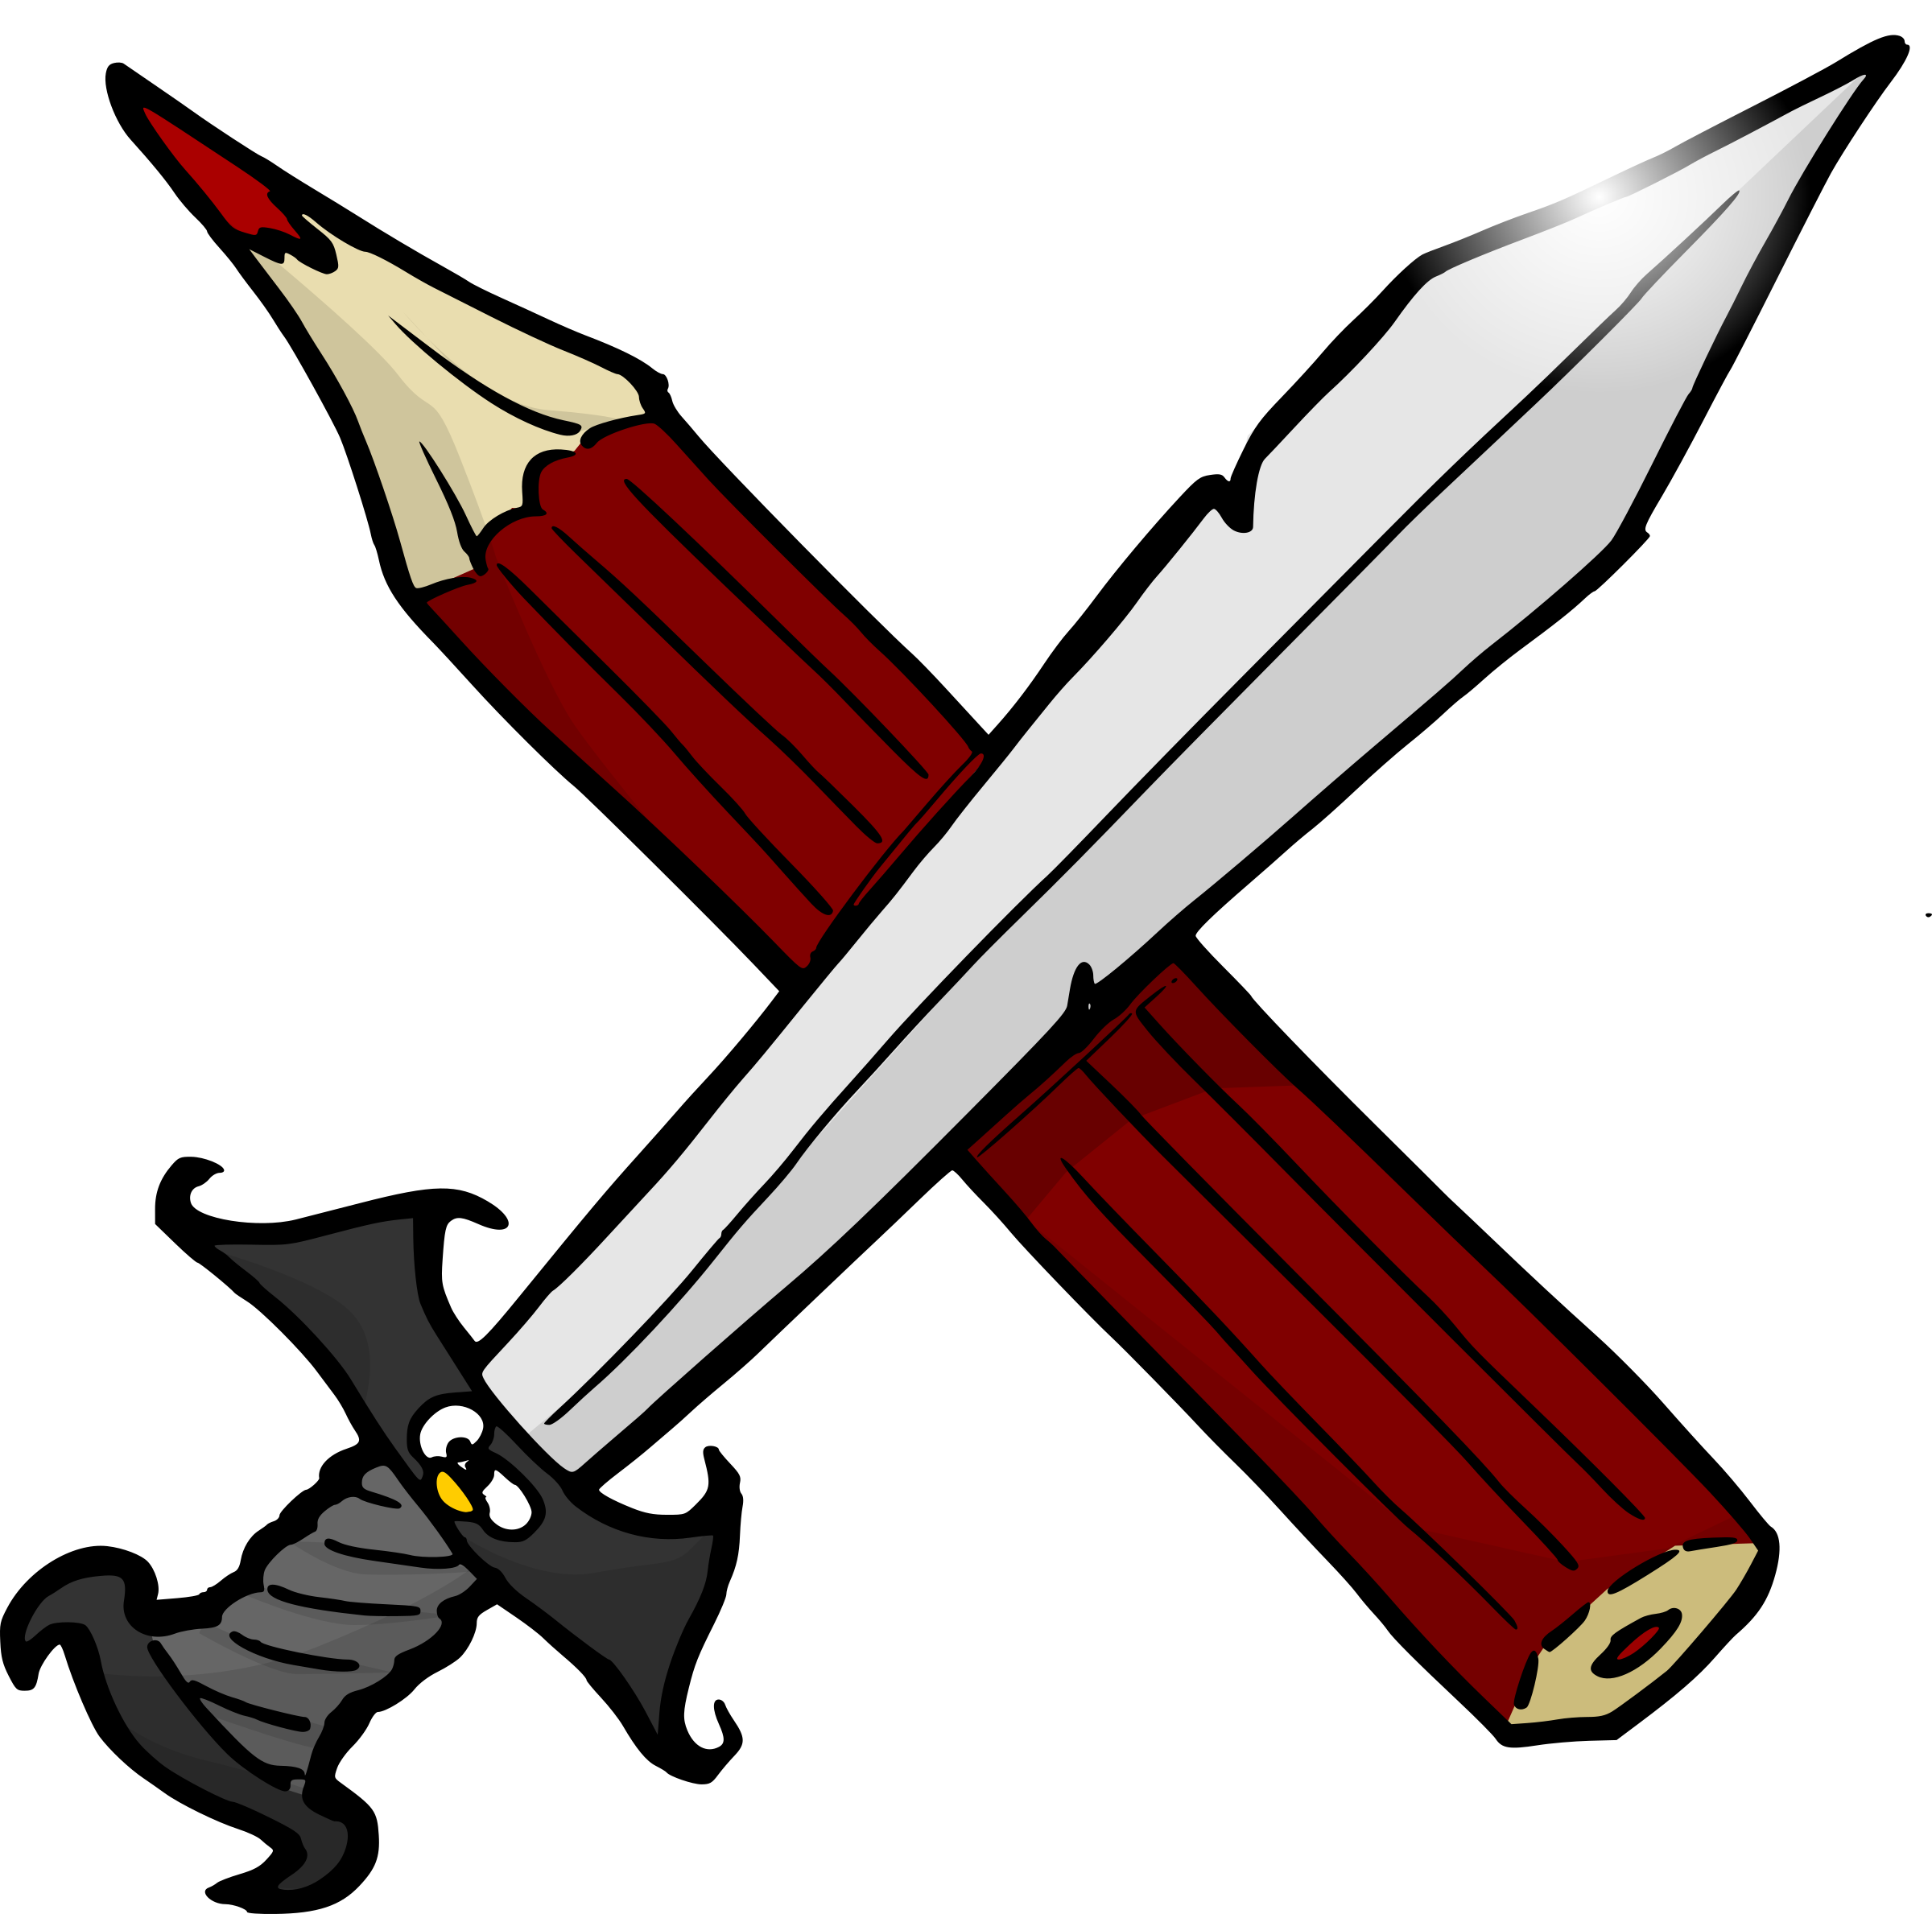 Sword and big image. Writer clipart pencil